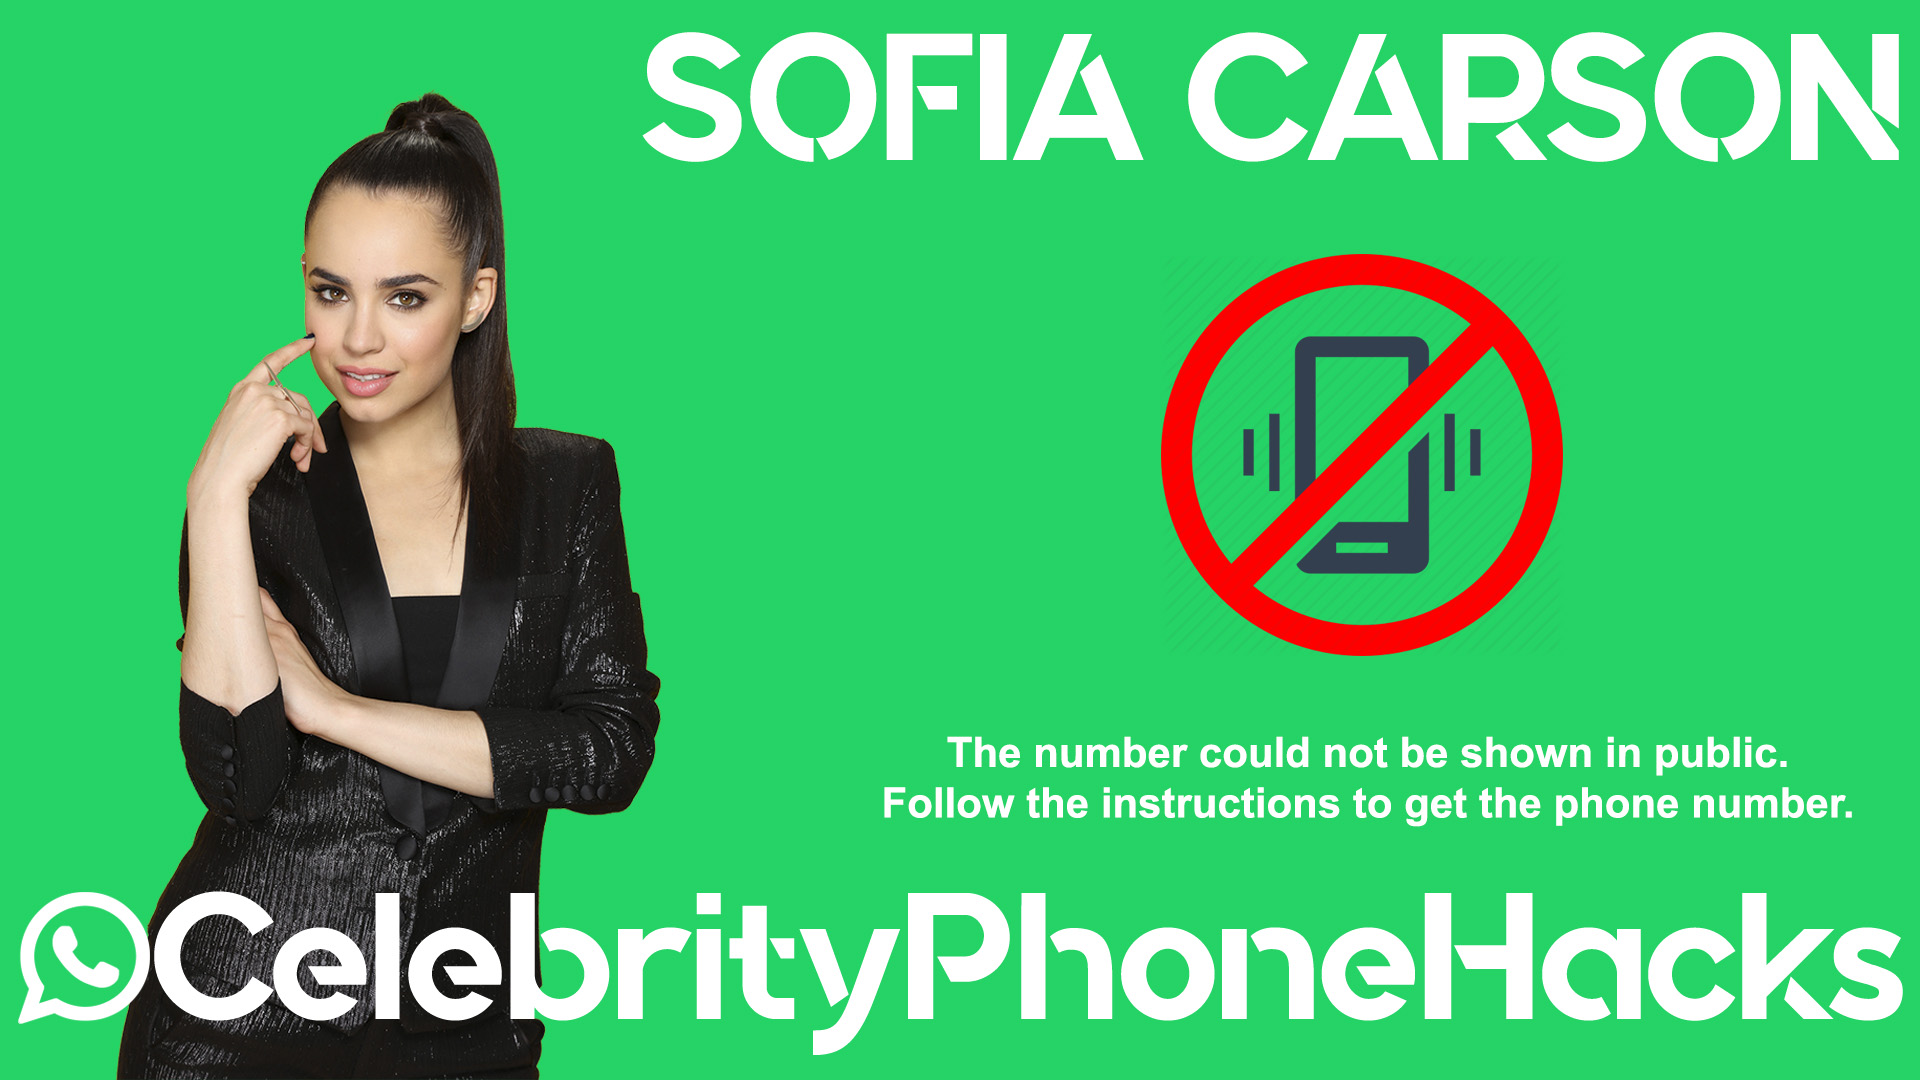 Sofia Carson real phone number 2019 whatsapp hacked leaked